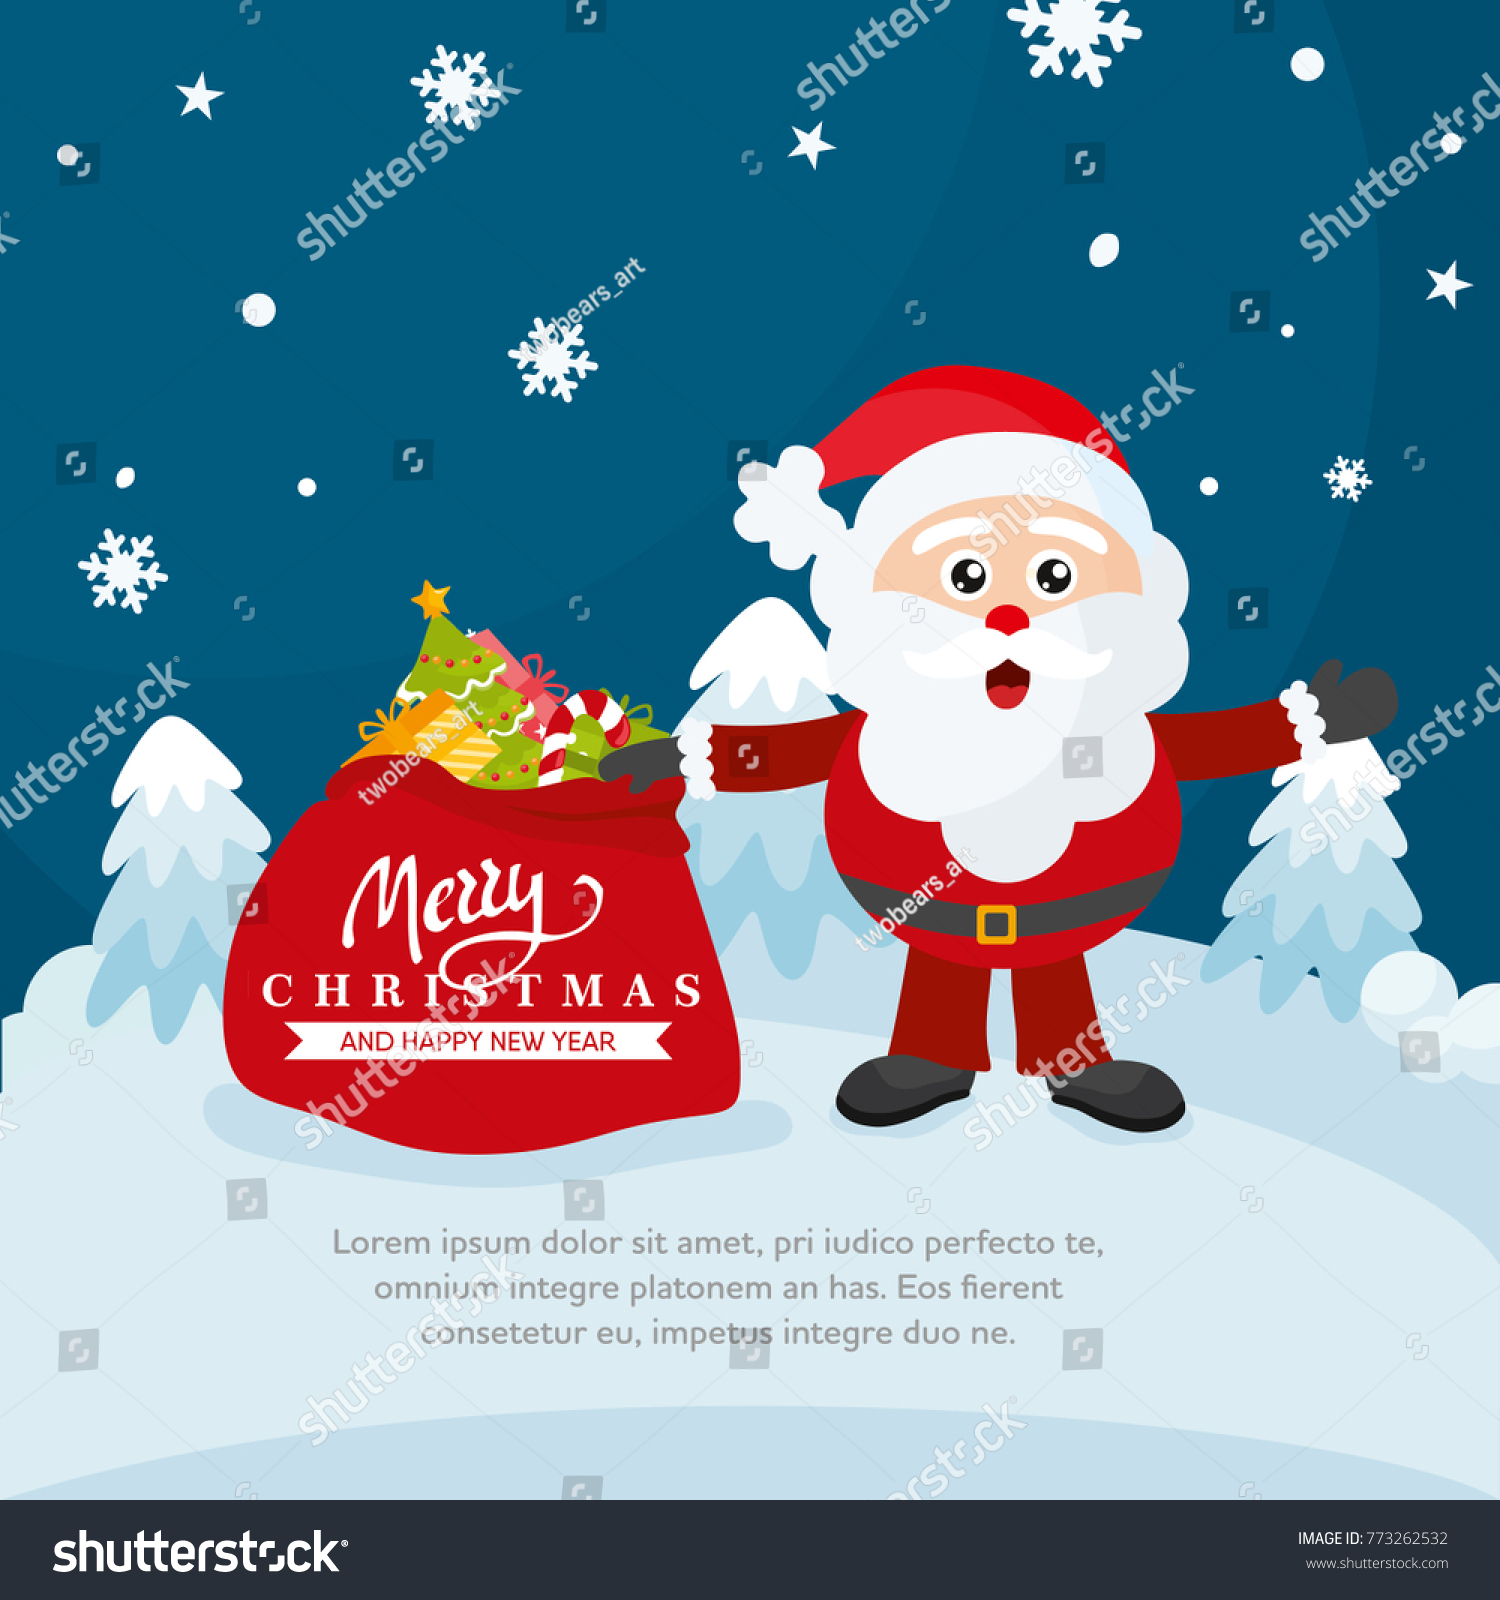 Merry christmas greeting card magic winter stock vector 773262532 merry christmas greeting card magic winter landscape holiday card template with hand drawn lettering m4hsunfo